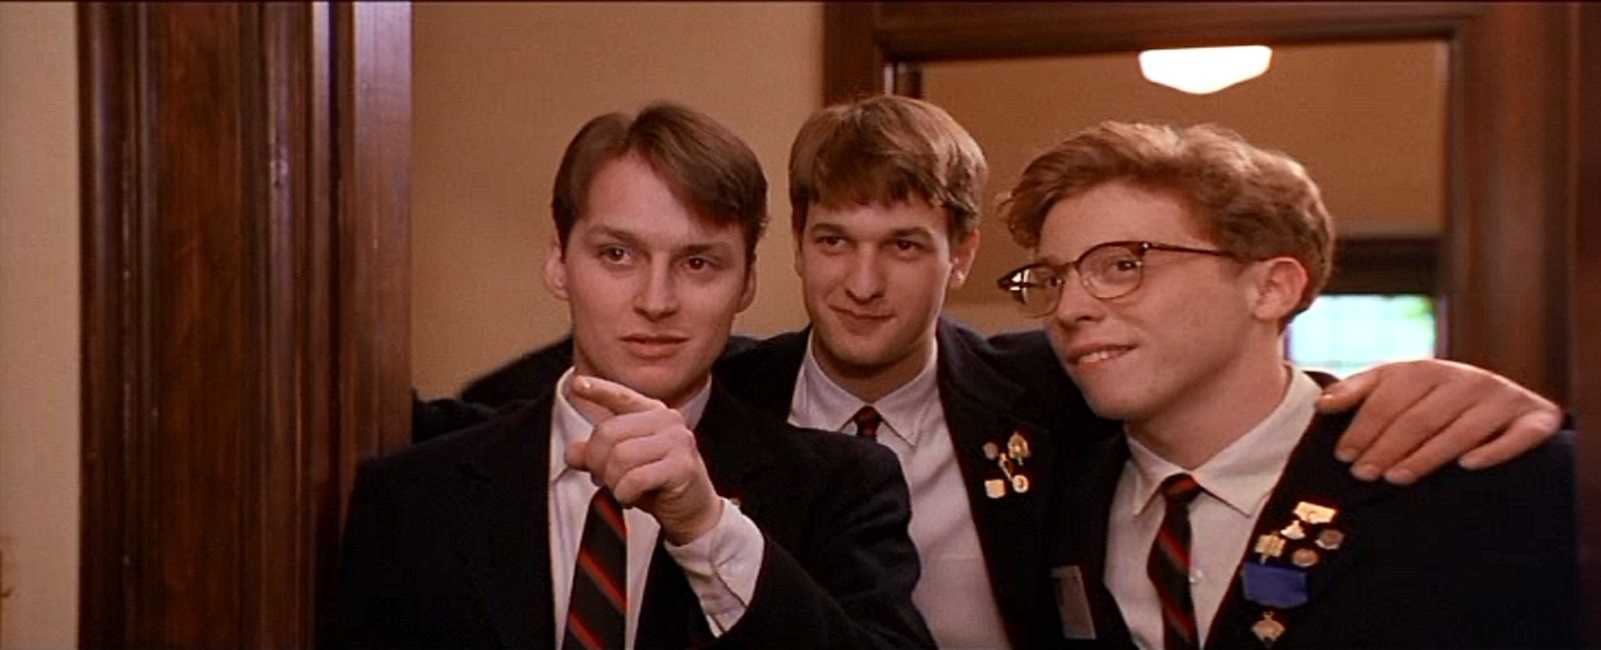 1989 Dead Poets Society Academy Award Best Picture Winners